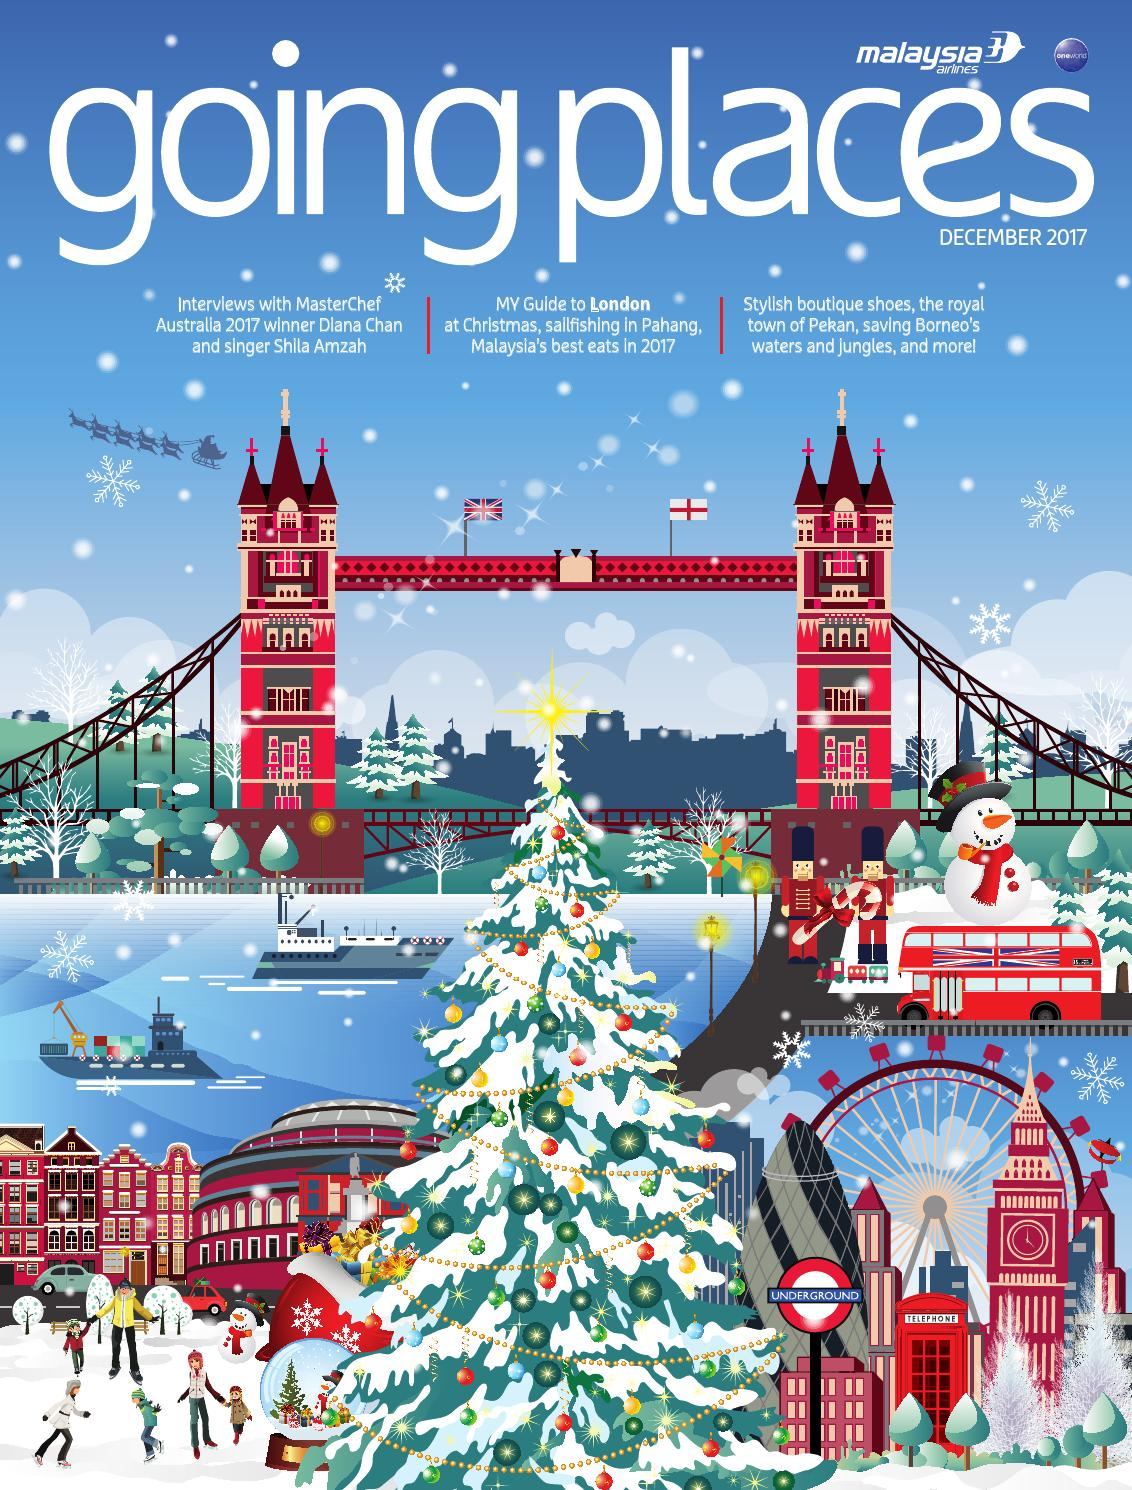 Going Places December 2017 By Spafax Malaysia Issuu Tiket Ocean Park Hongkong Dan Transfer Anak